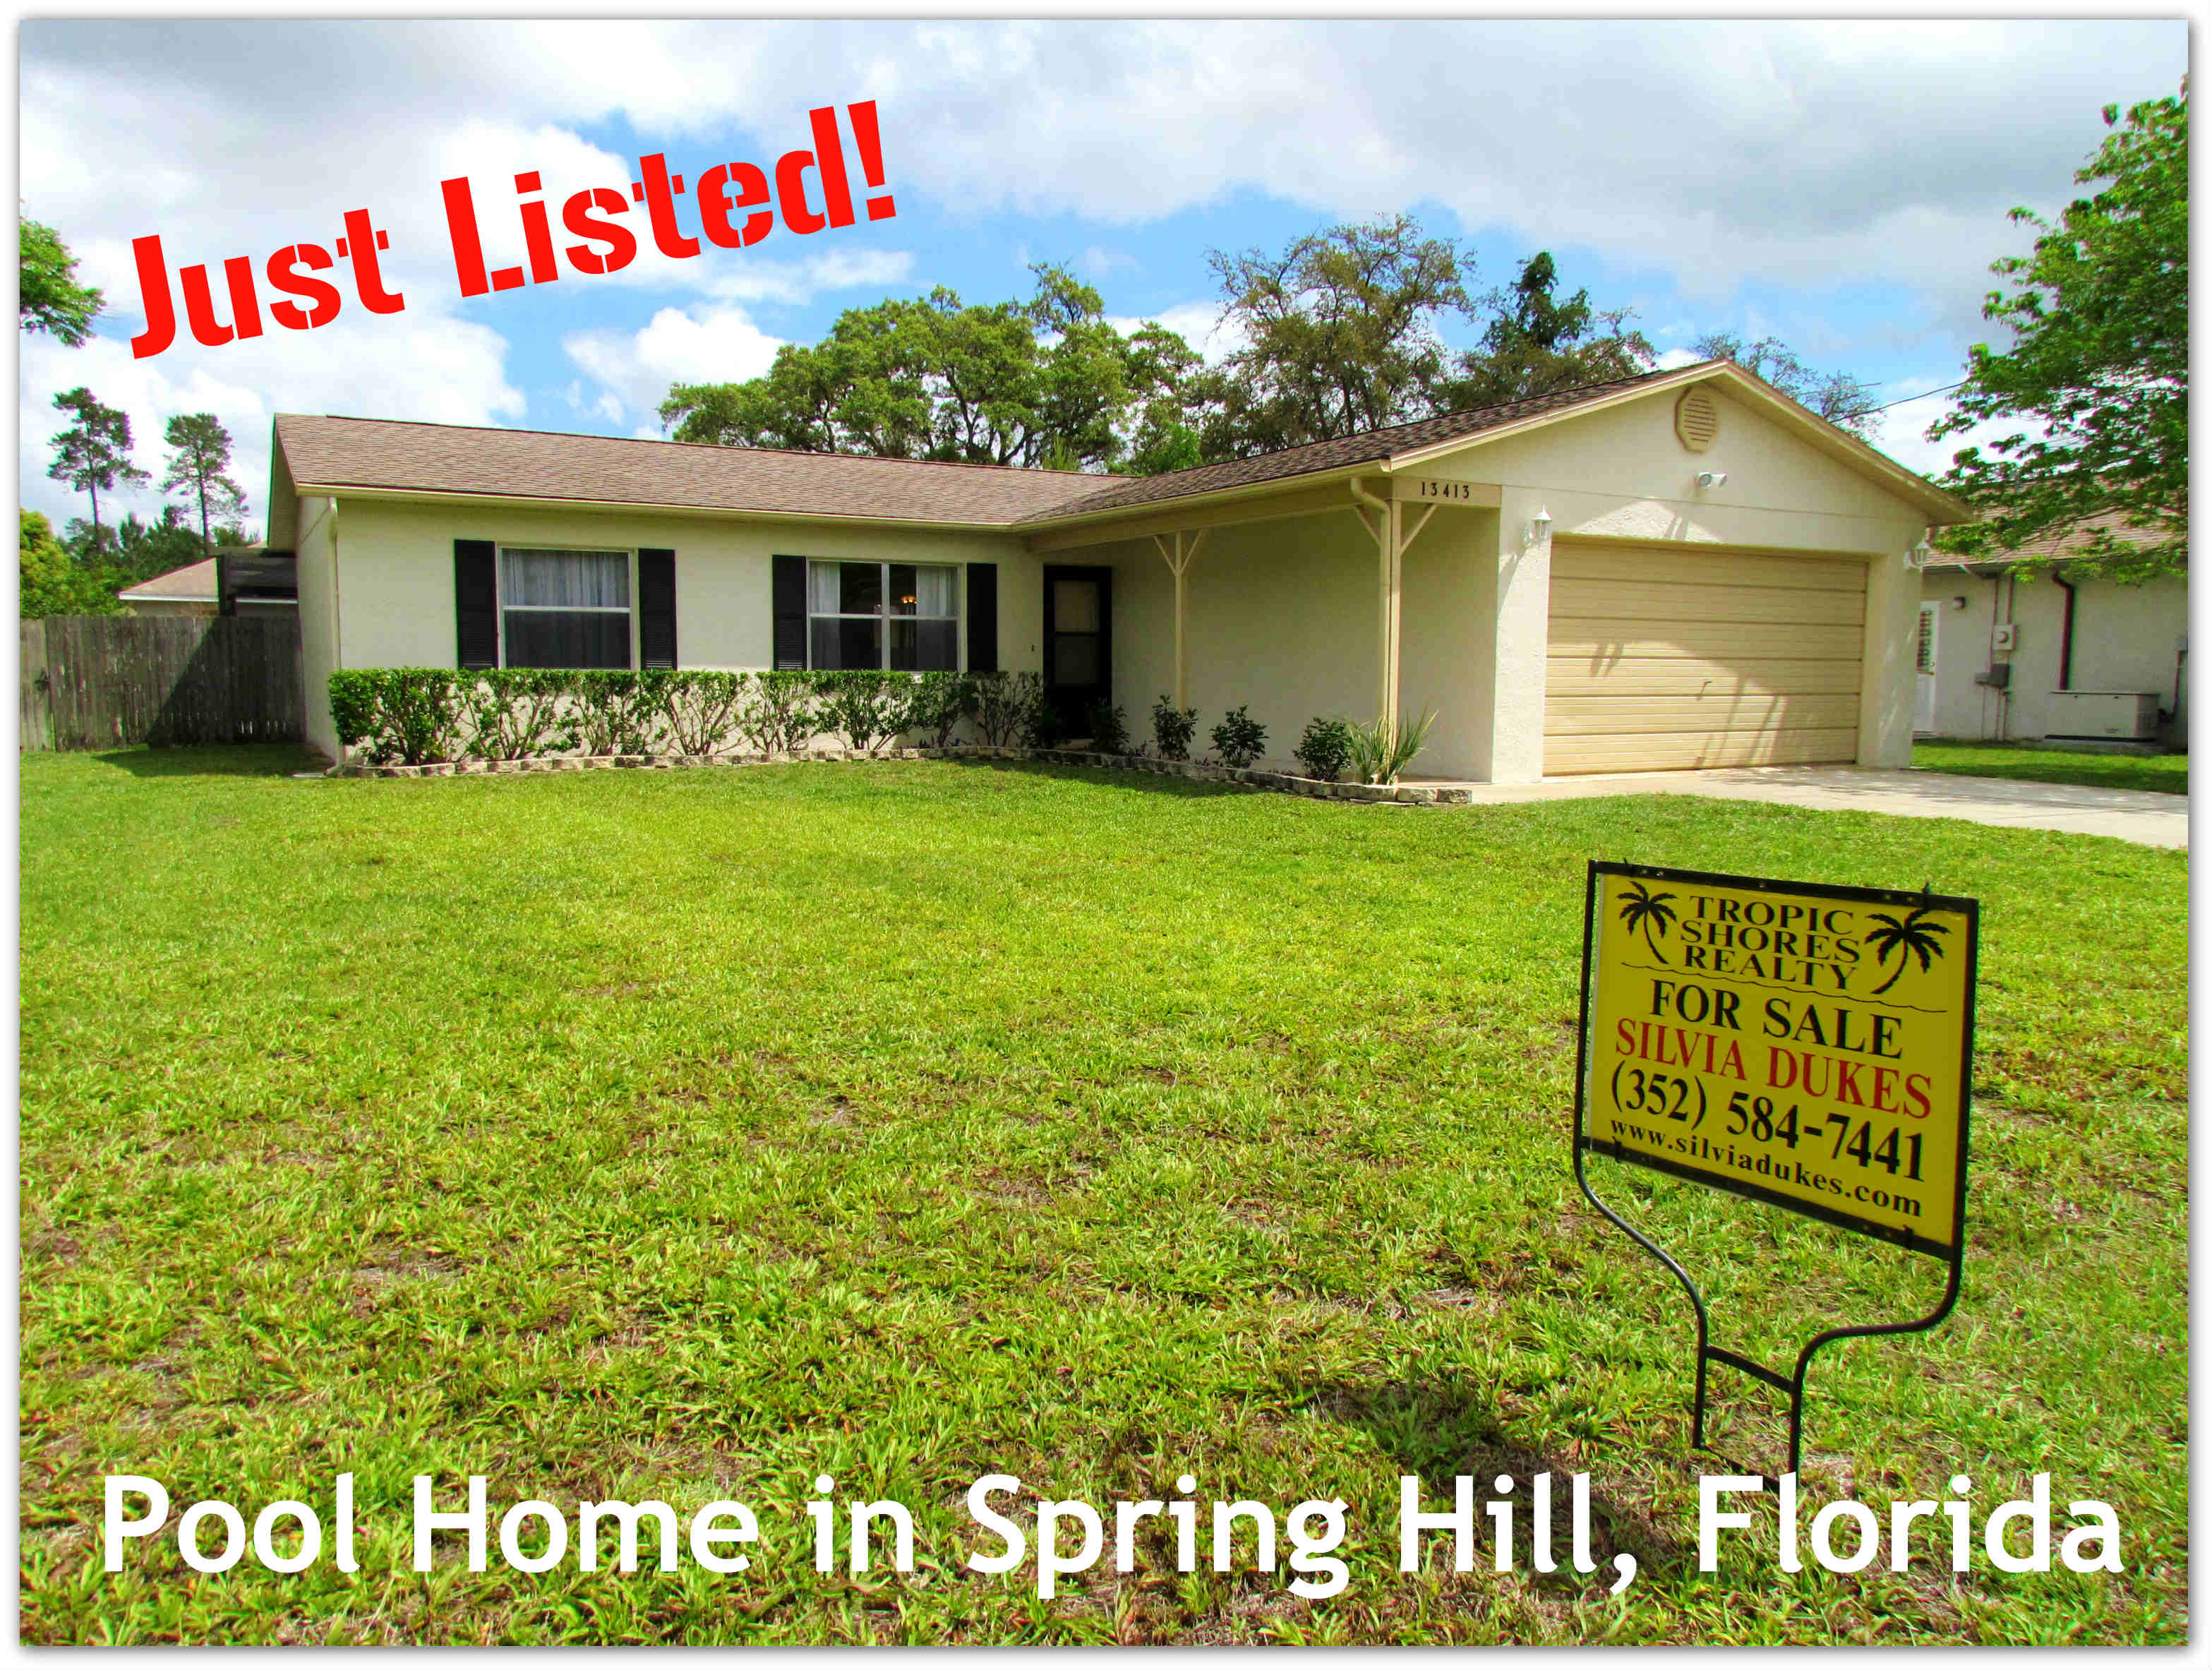 spring hill florida home for sale with pool and fenced yard